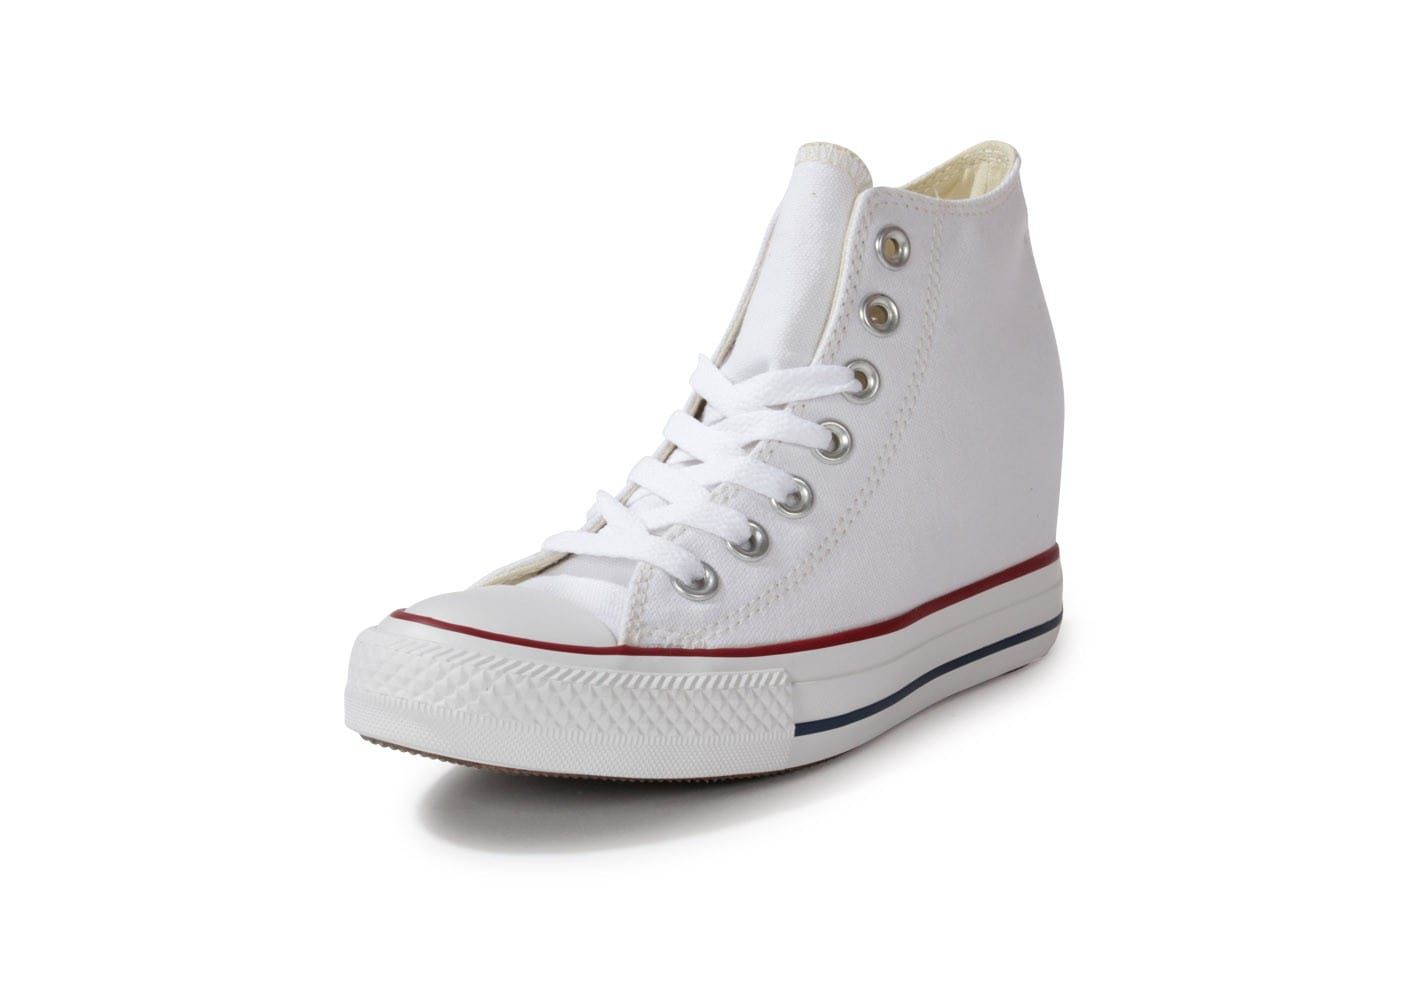 ce413f00317bb ... Chaussures Converse Chuck Taylor All-star Compensée Blanche vue avant  ...